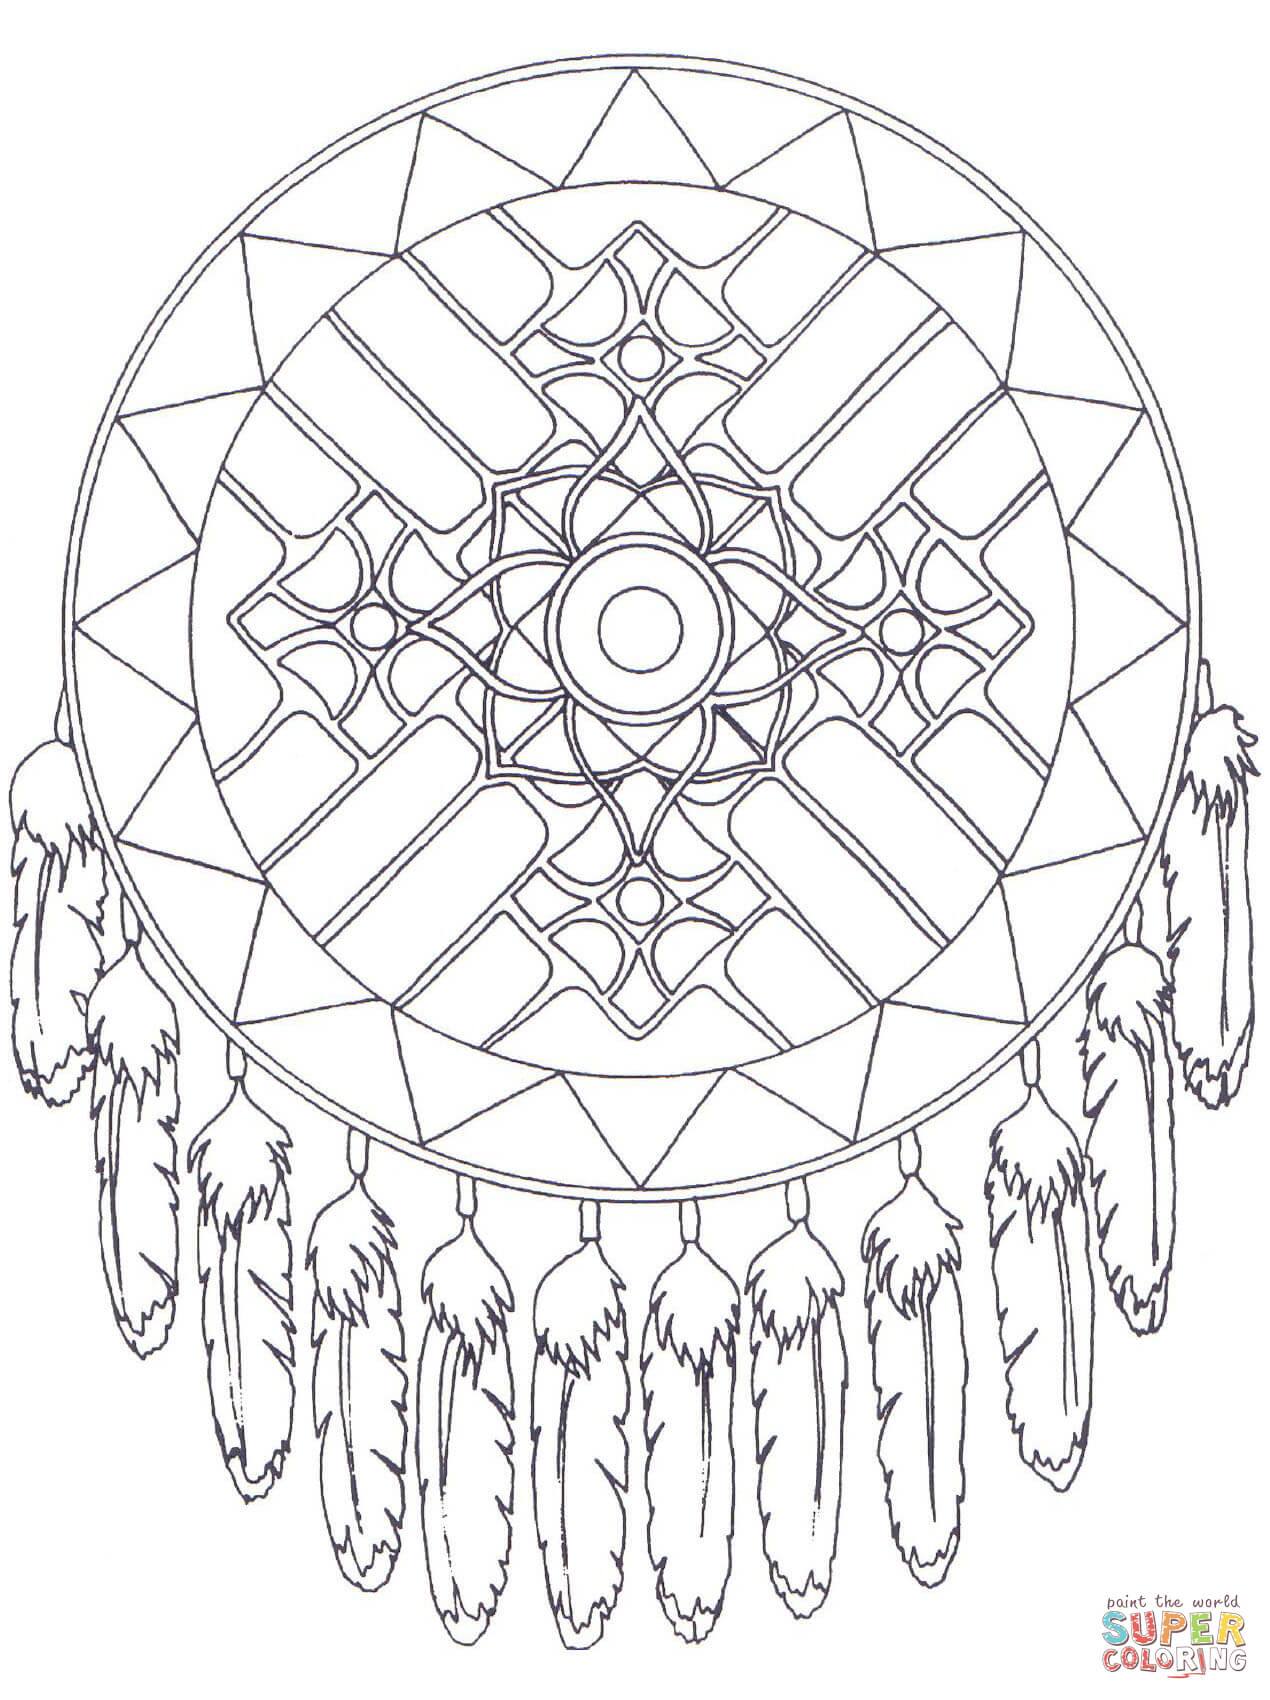 dream catcher coloring pages to download and print for free - Dream Catcher Coloring Pages